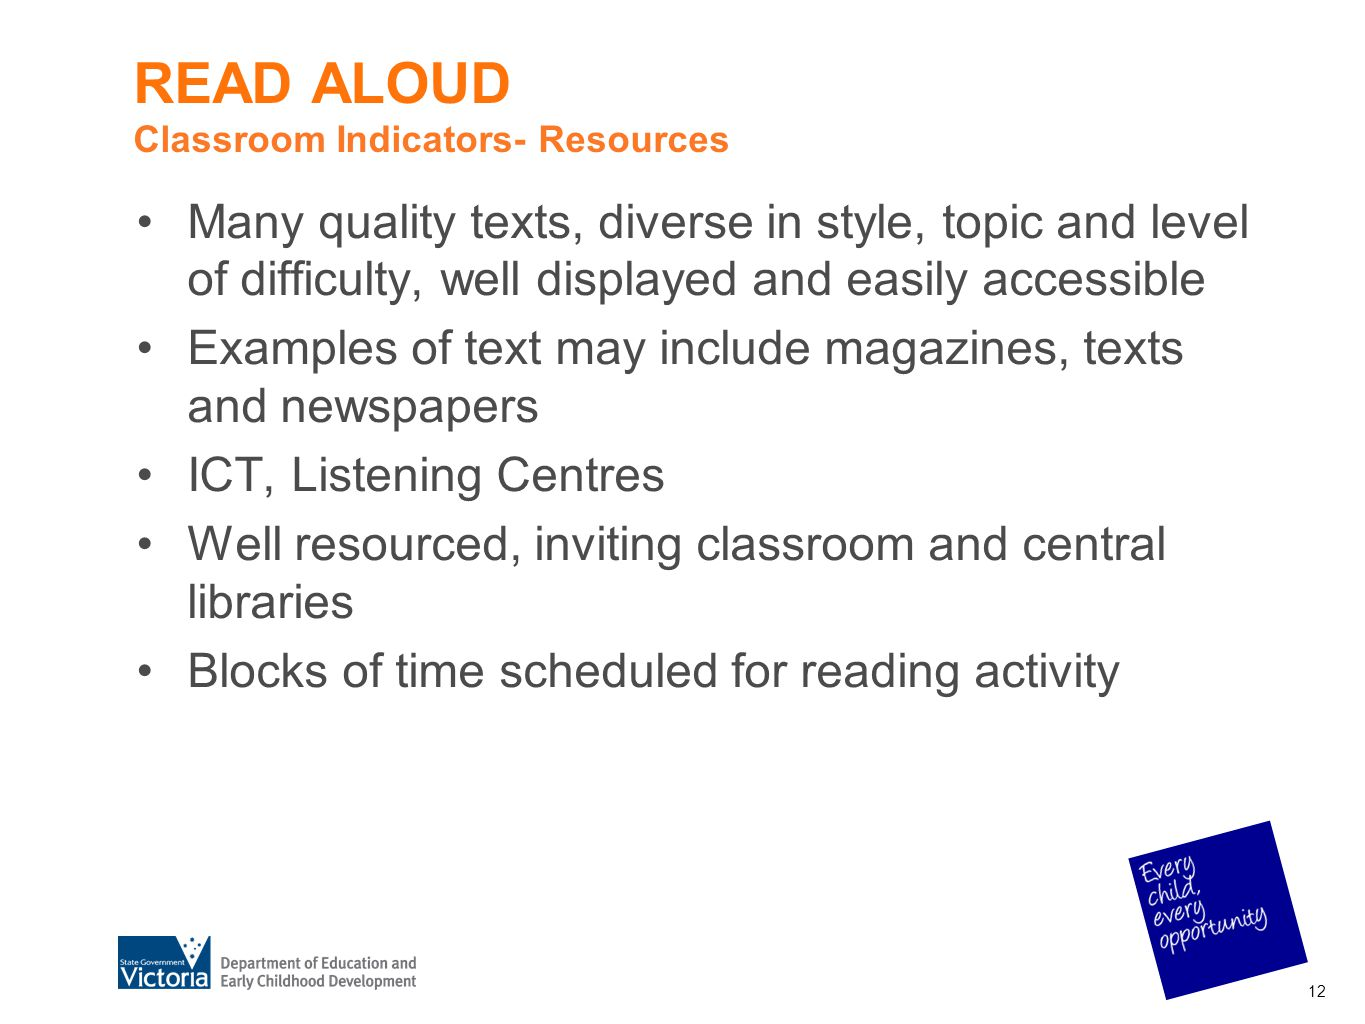 READ ALOUD Classroom Indicators- Resources Many quality texts, diverse in style, topic and level of difficulty, well displayed and easily accessible E